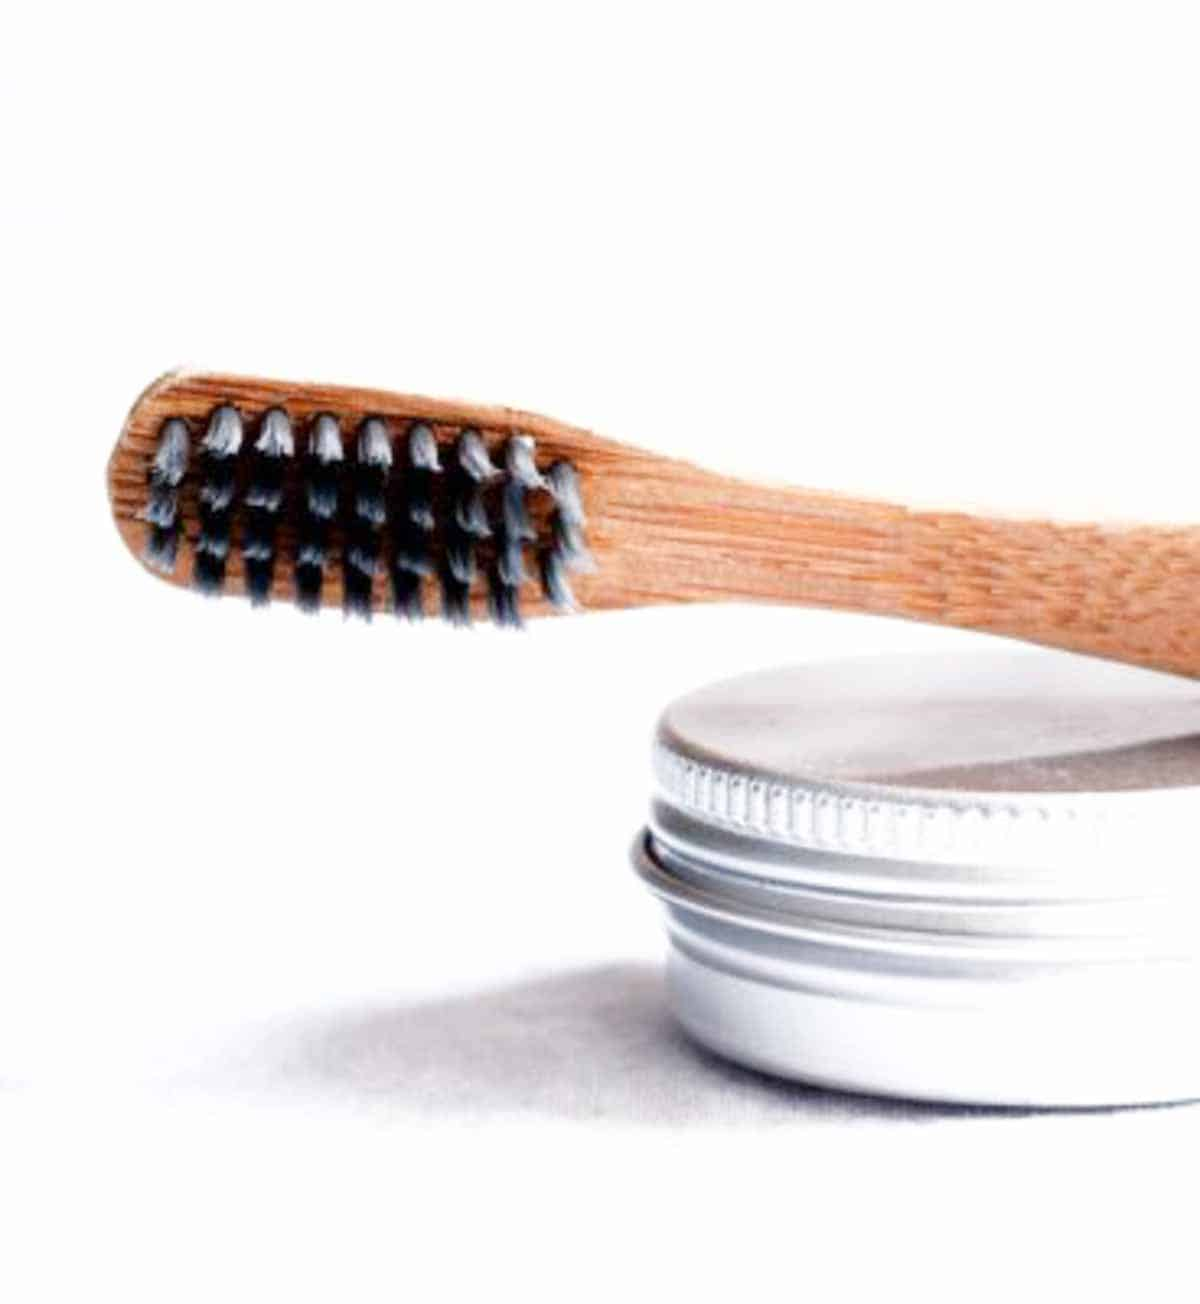 Best Homemade Natural Toothpaste